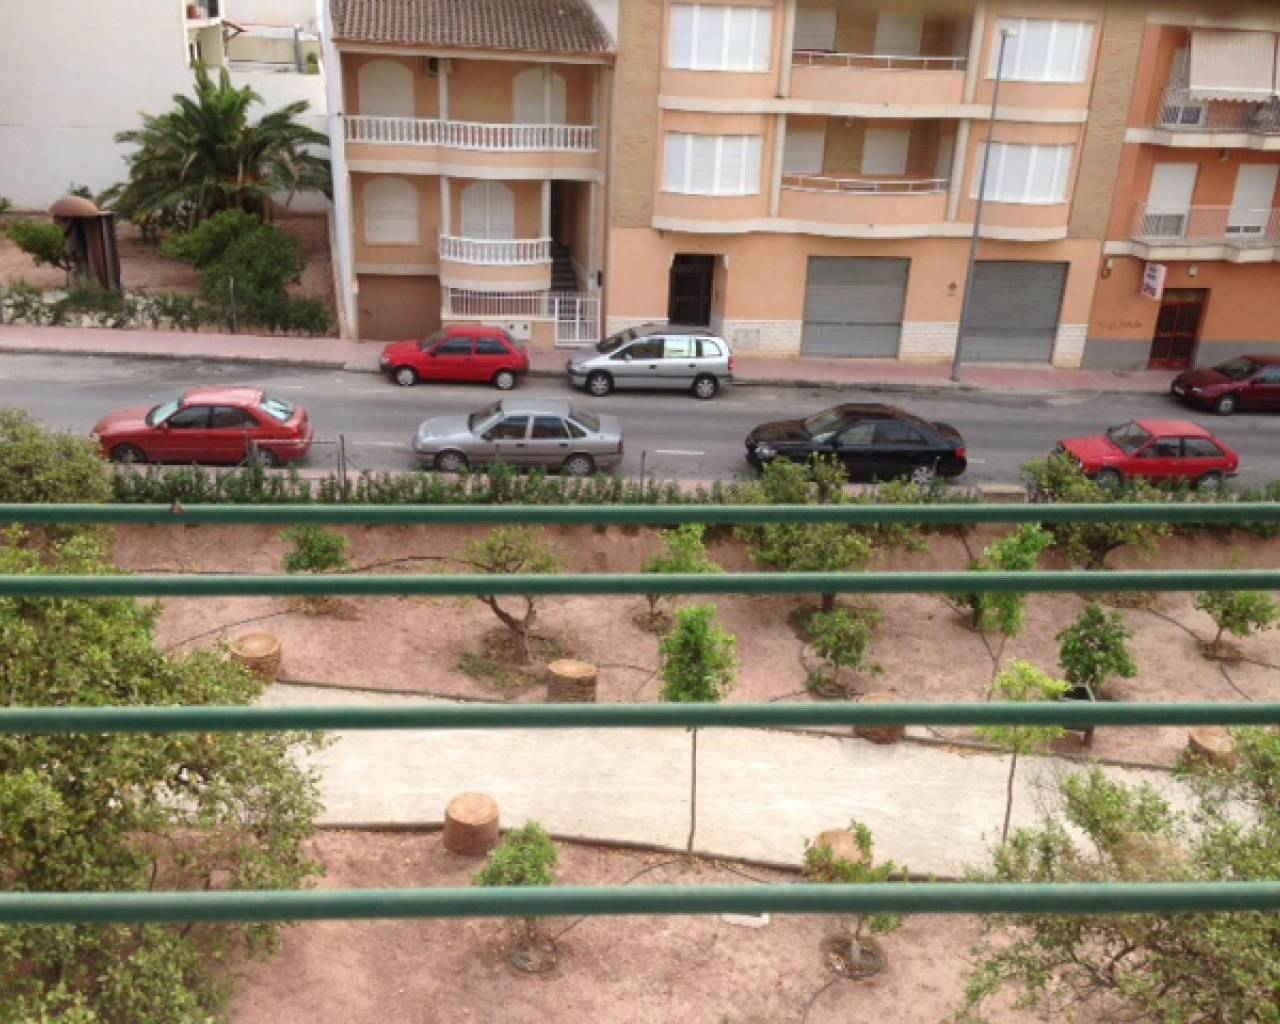 For Sale - Apartment / Flat - Blanca - Desirable town centre setting.